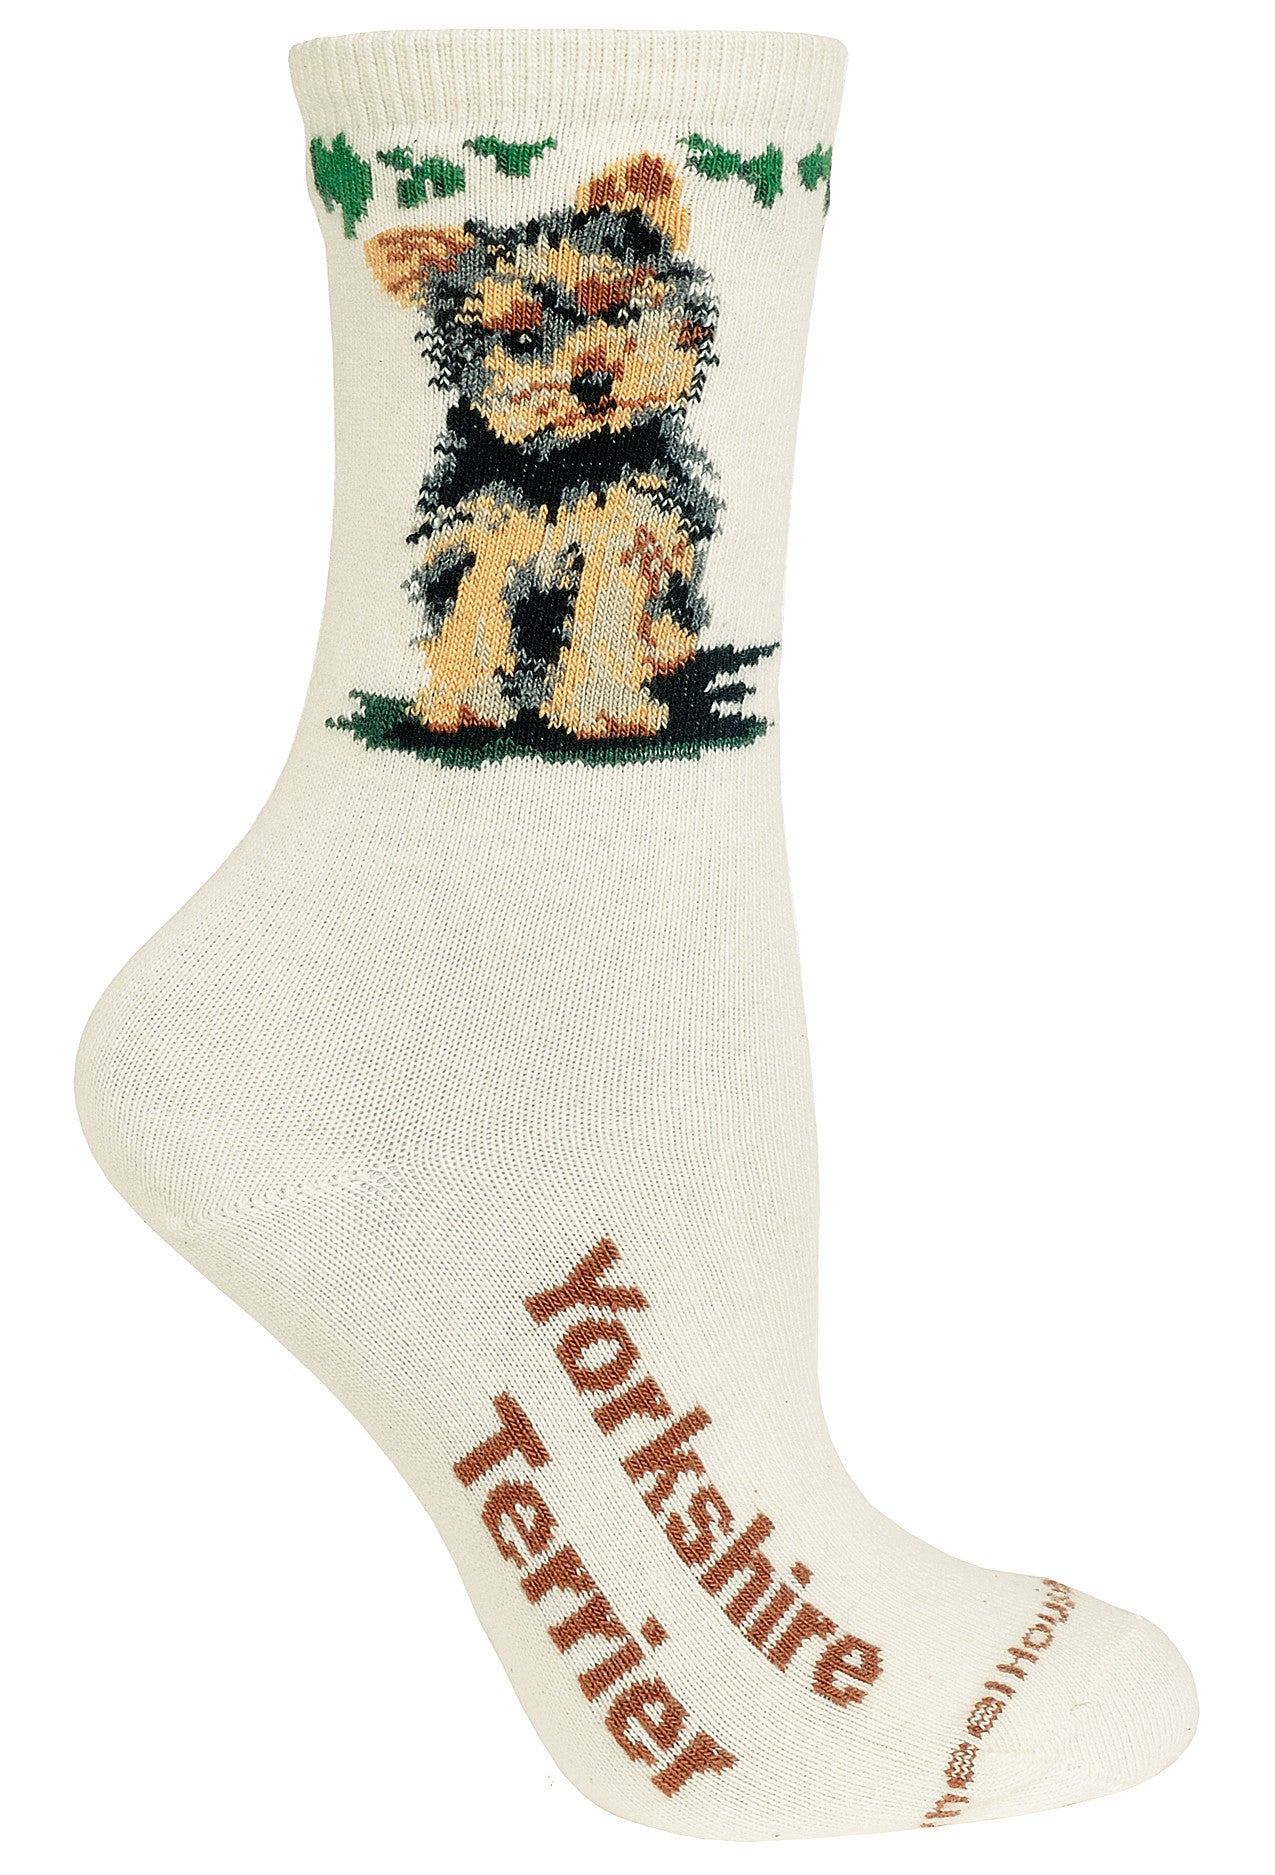 Puppy Cut Yorkshire Terrier on Natural Crew Socks